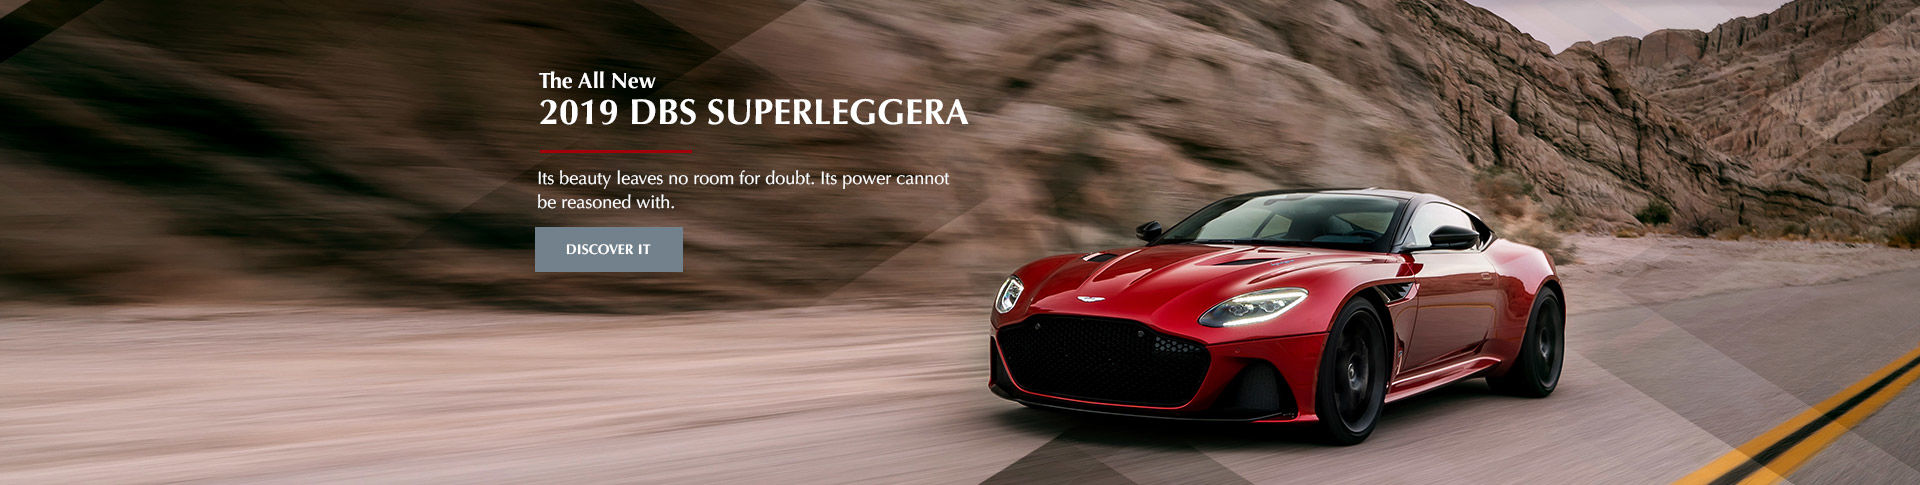 2019 DBS Superleggera